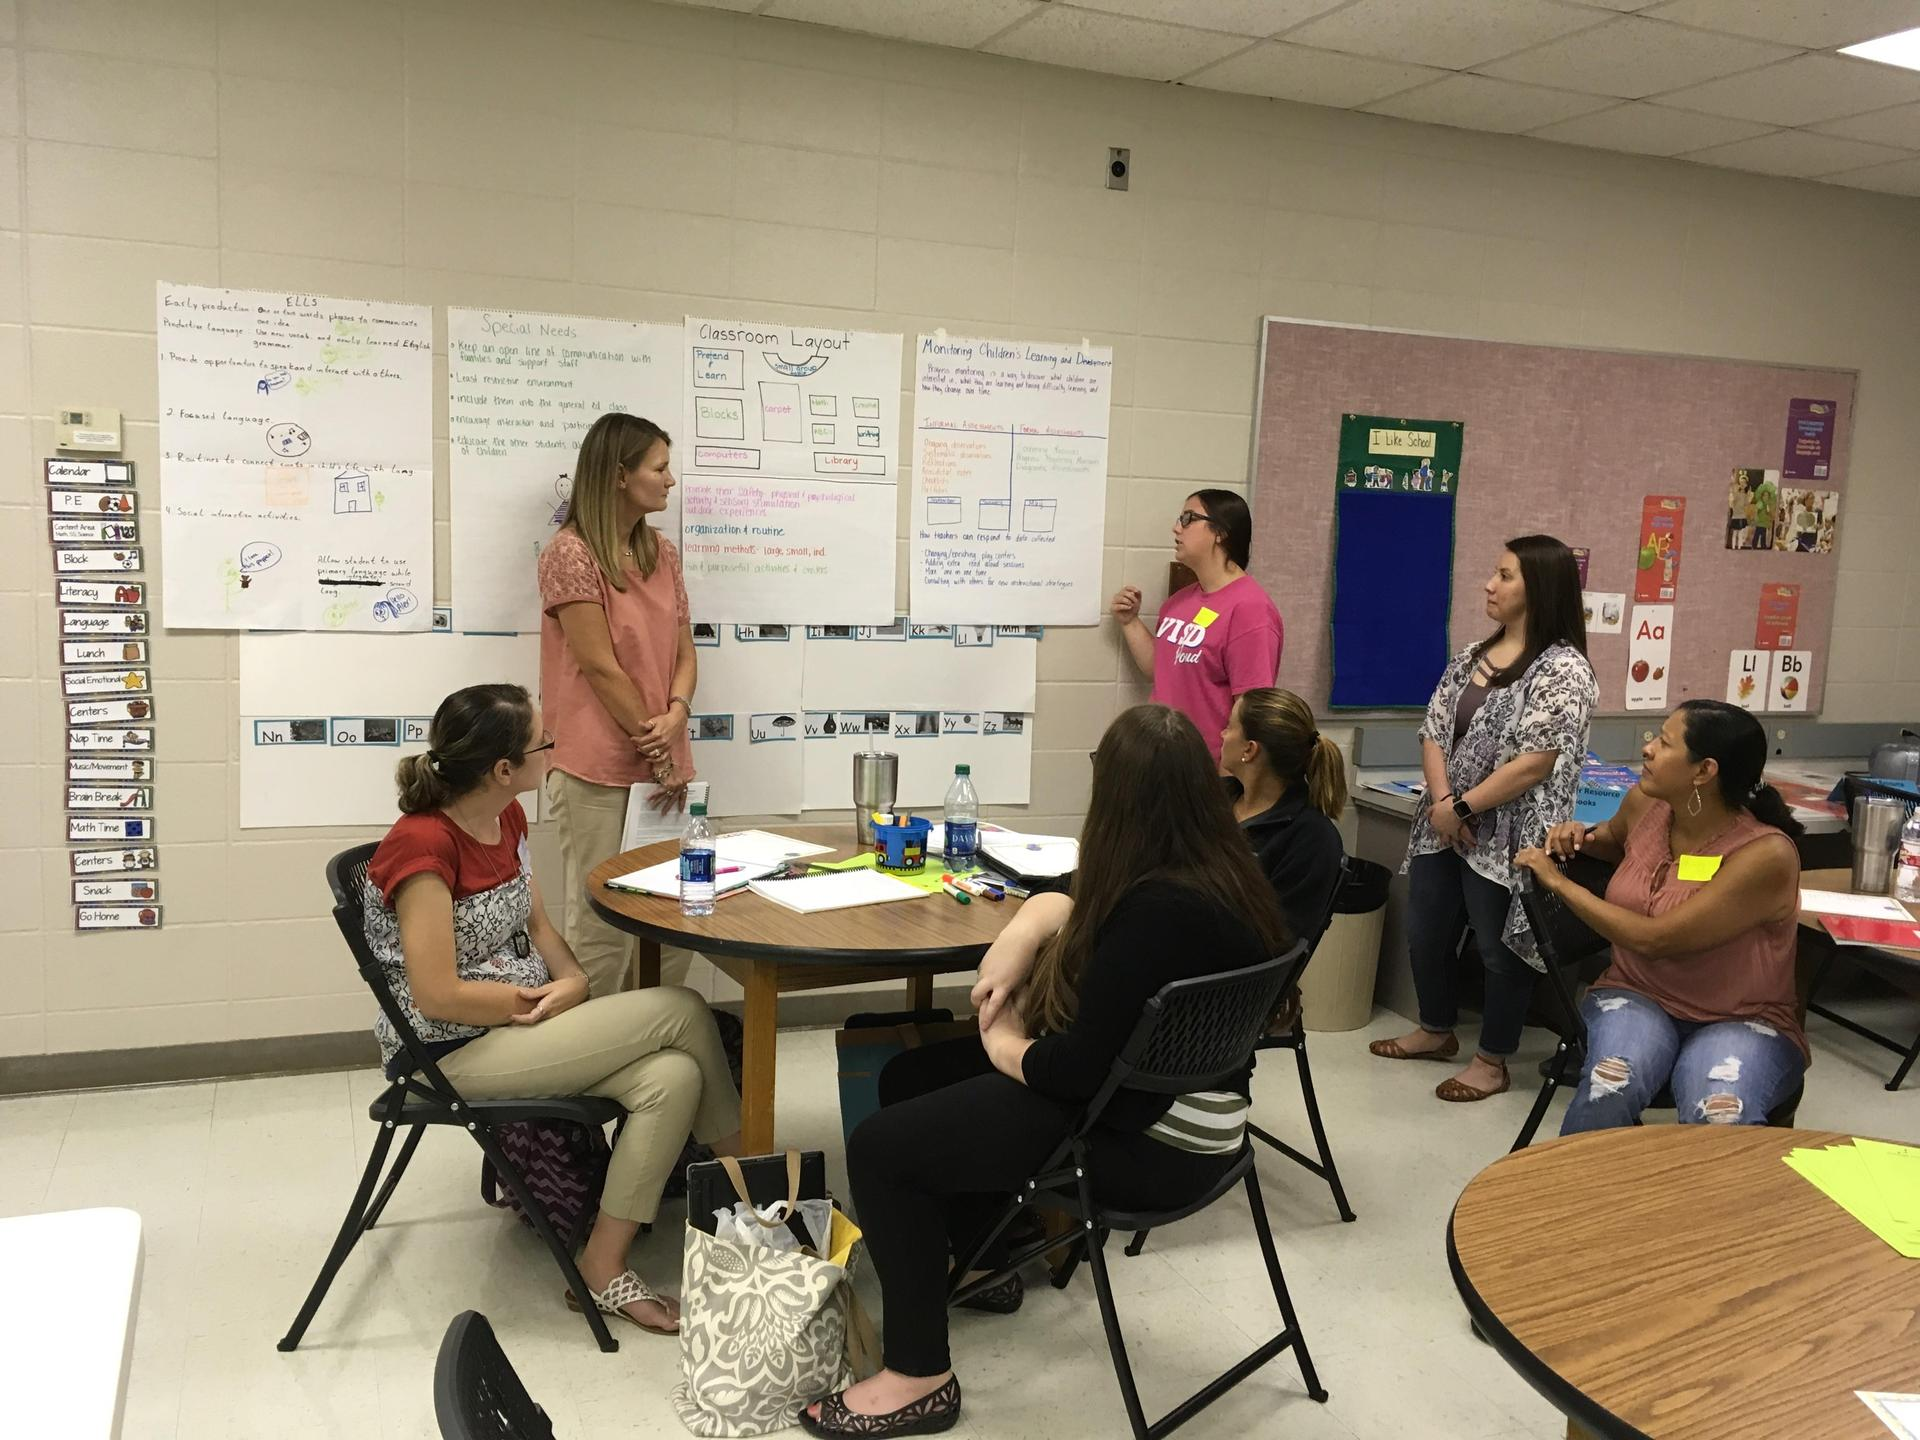 visd pre-k team in plc training before the 2018 school year